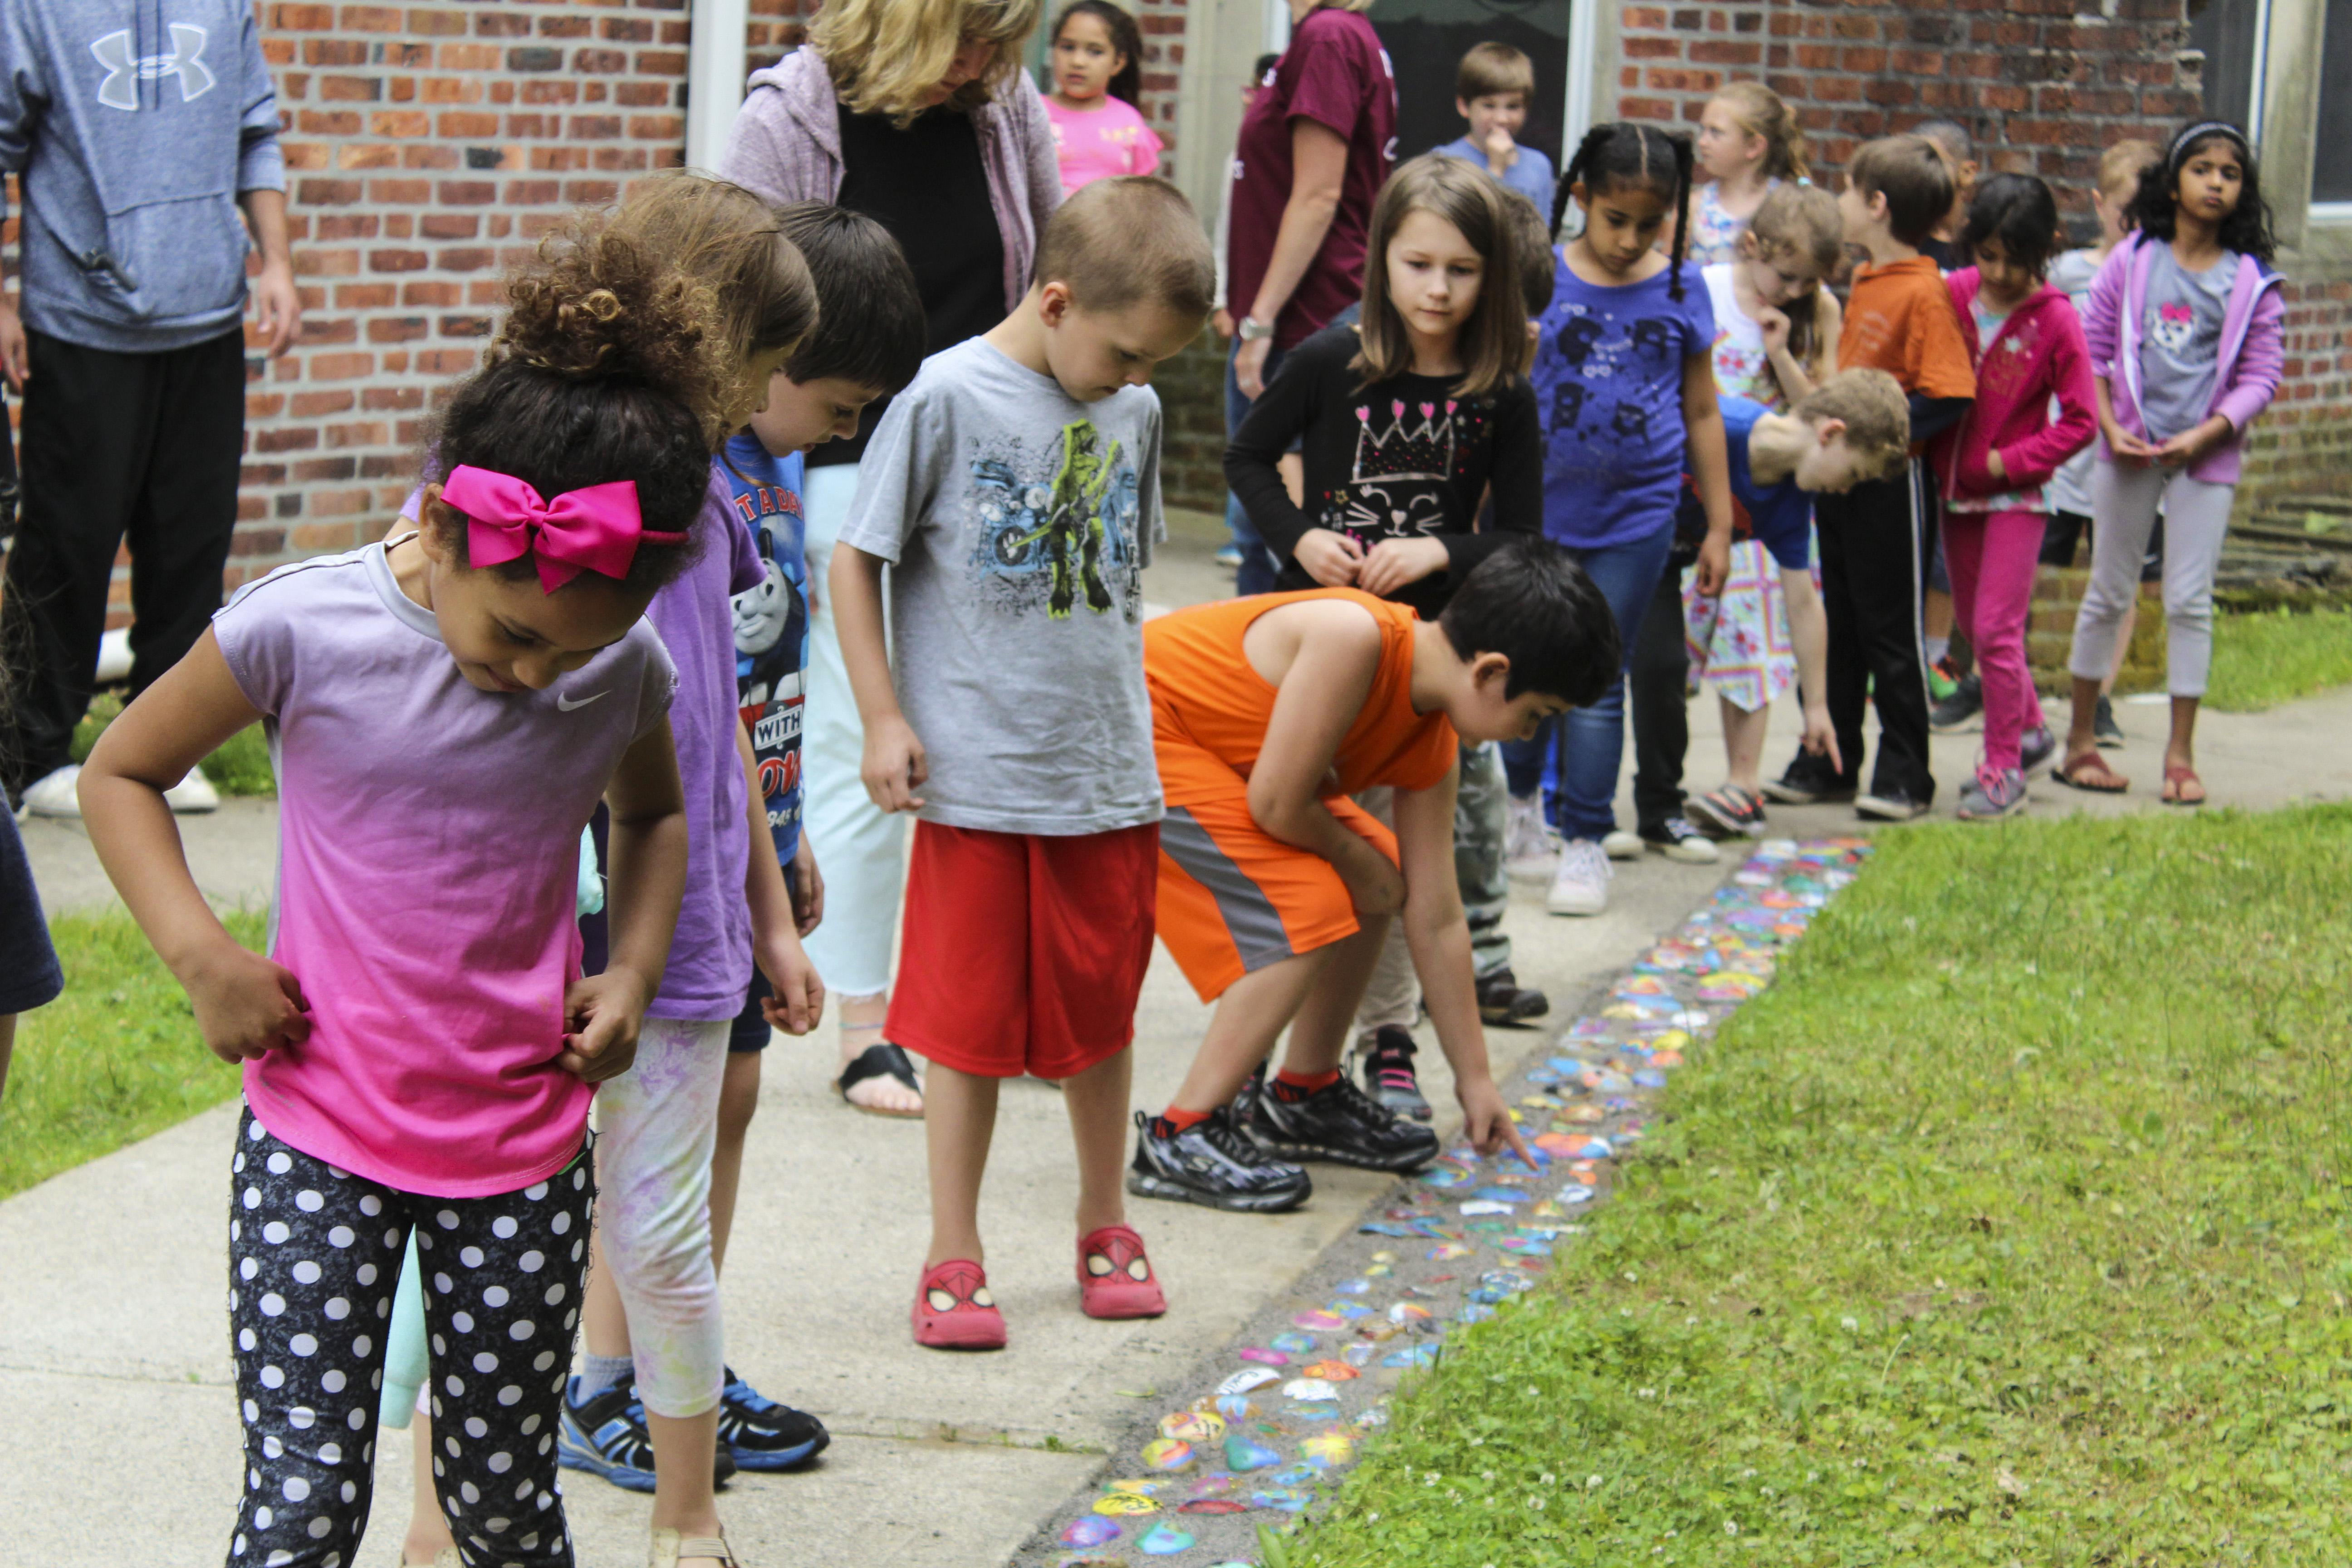 Students looking at kindness rocks walk